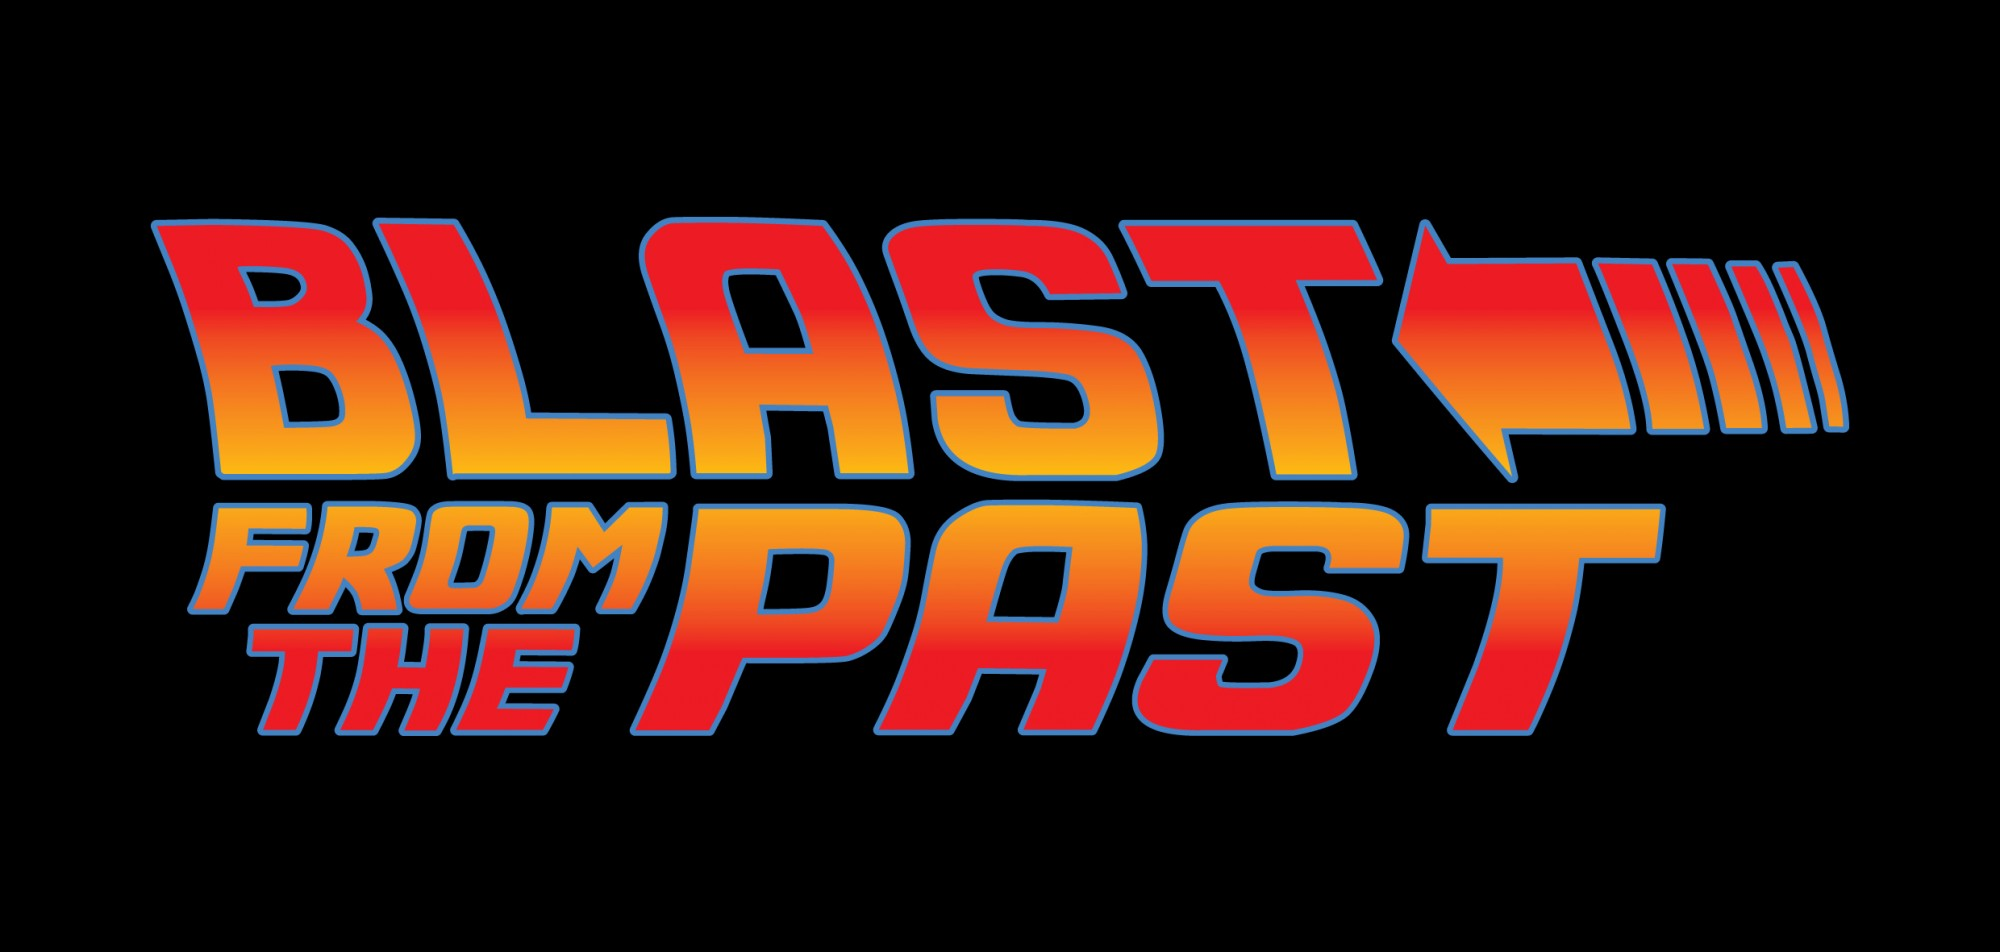 Blast from the past logo on black